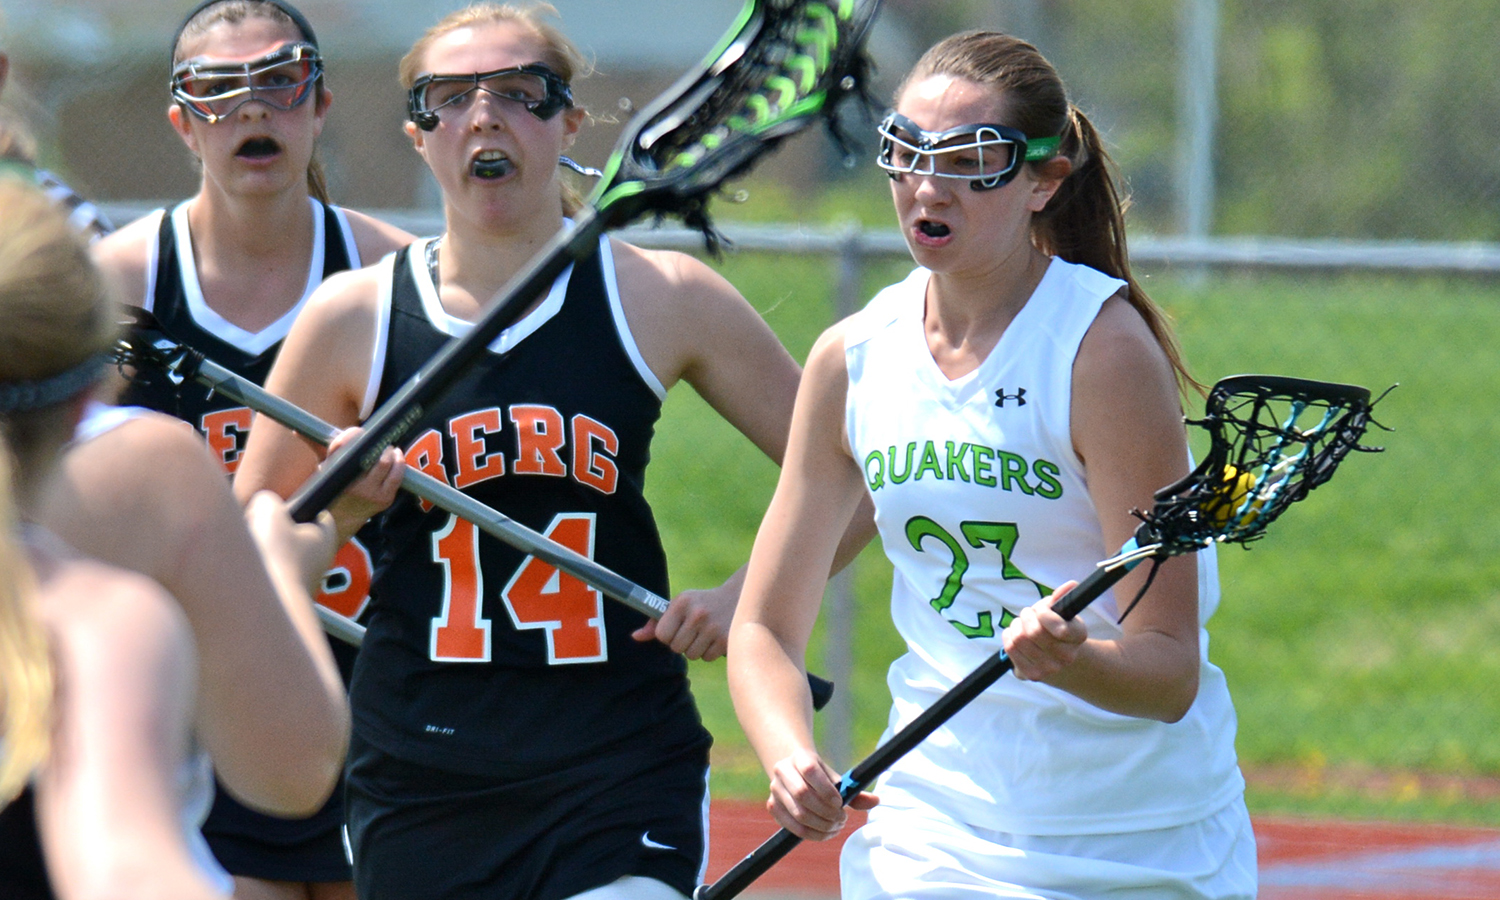 Blaine tallies six goals in @DubC_WLAX win